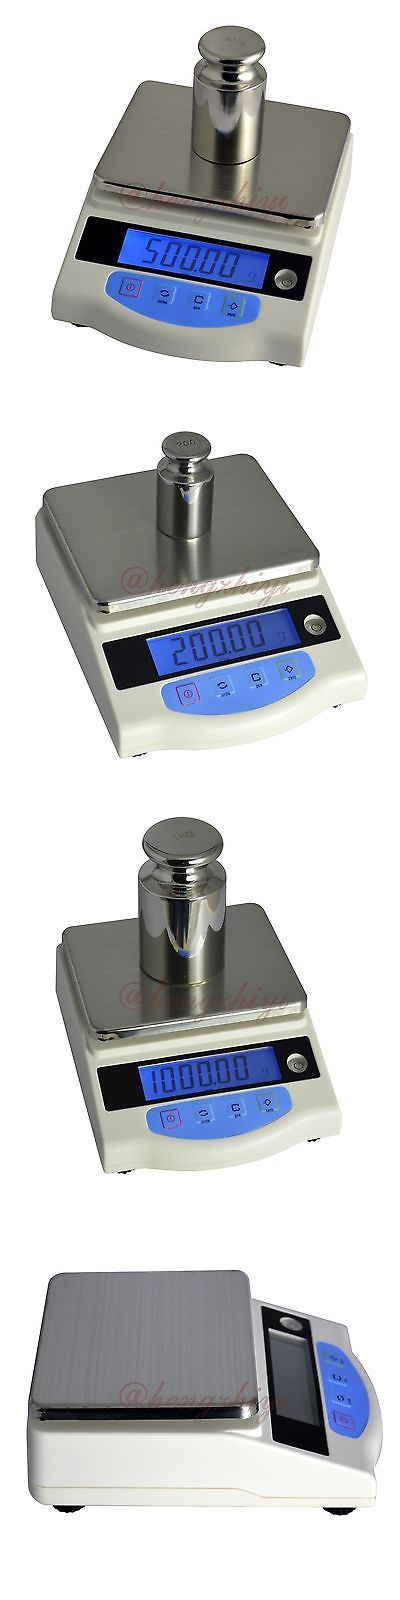 Pocket Digital Scales: 2000G X 0.01G High Precision Digital Scale Balance W Germany Sensor + Counting BUY IT NOW ONLY: $115.0